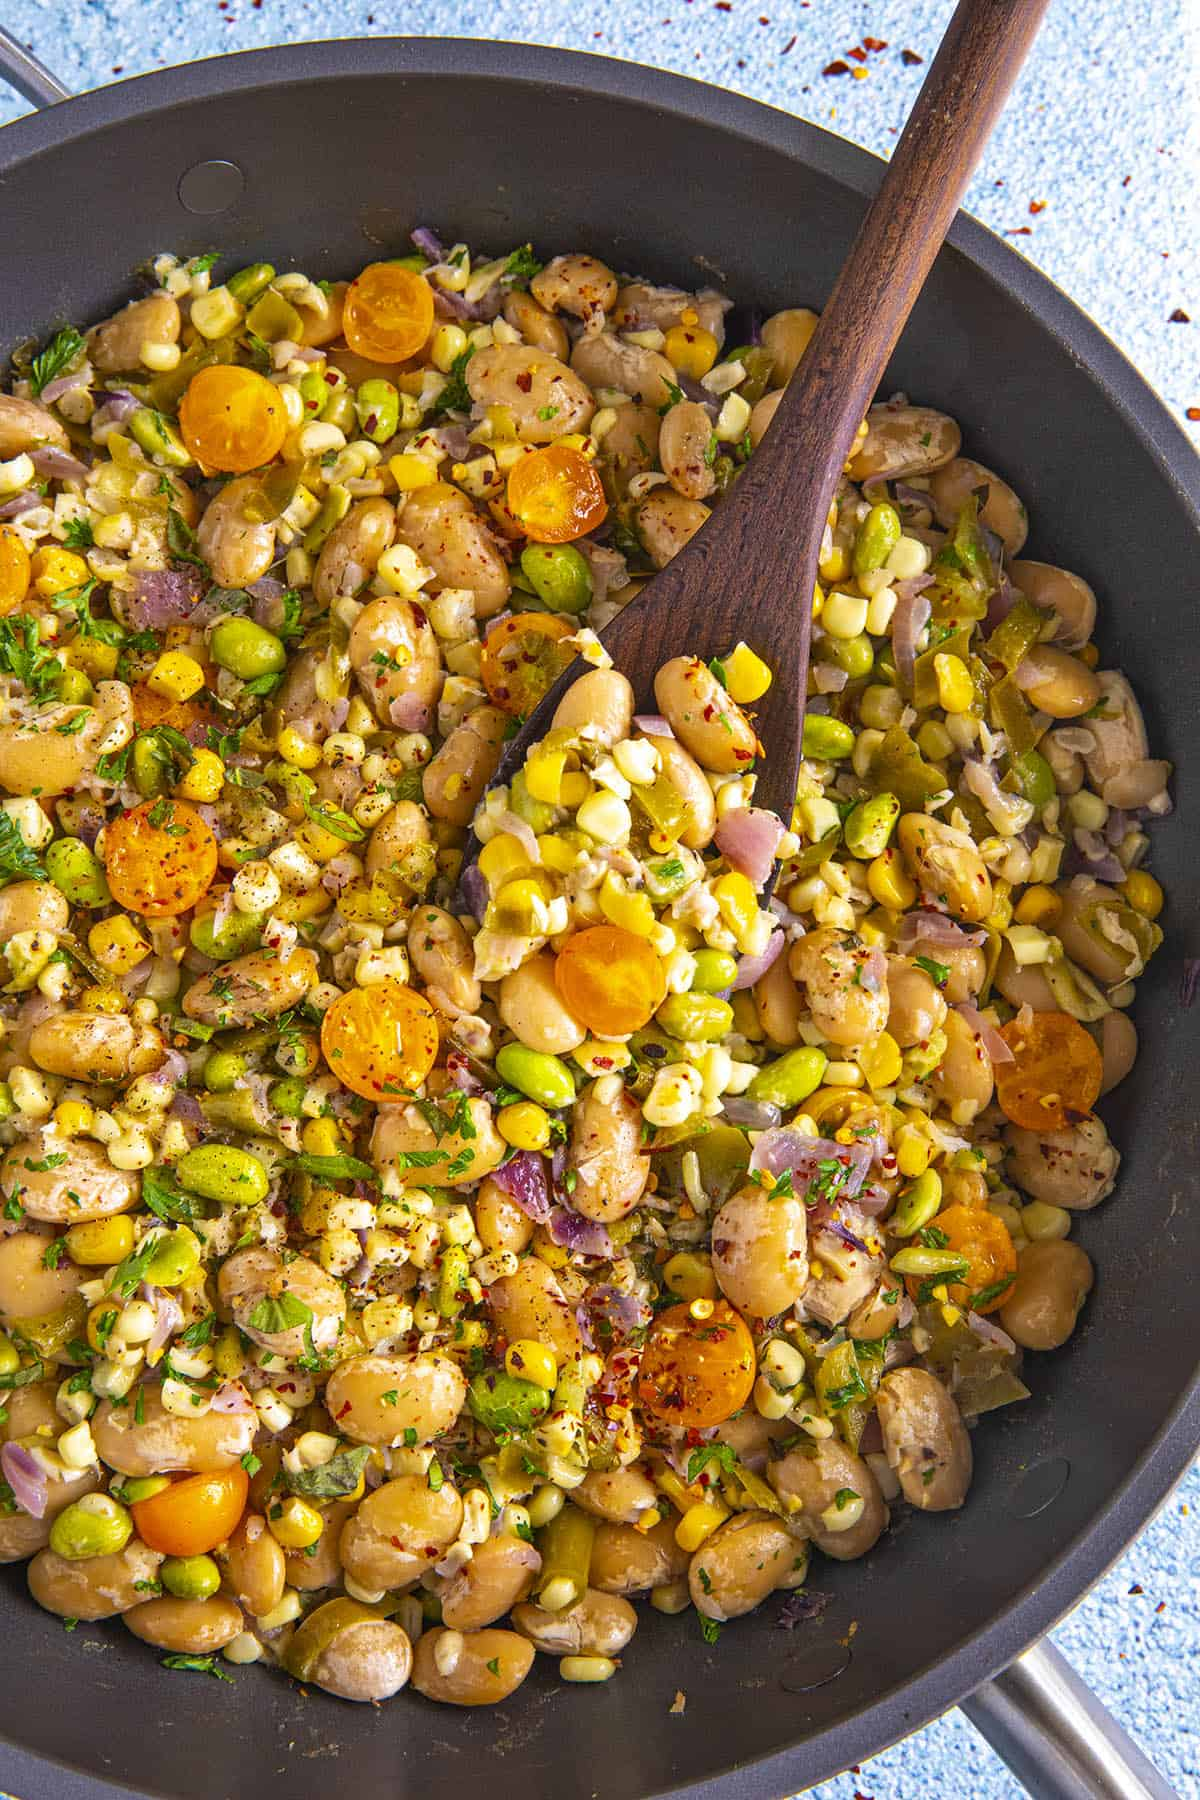 Mike serving a scoop of succotash from the hot pan